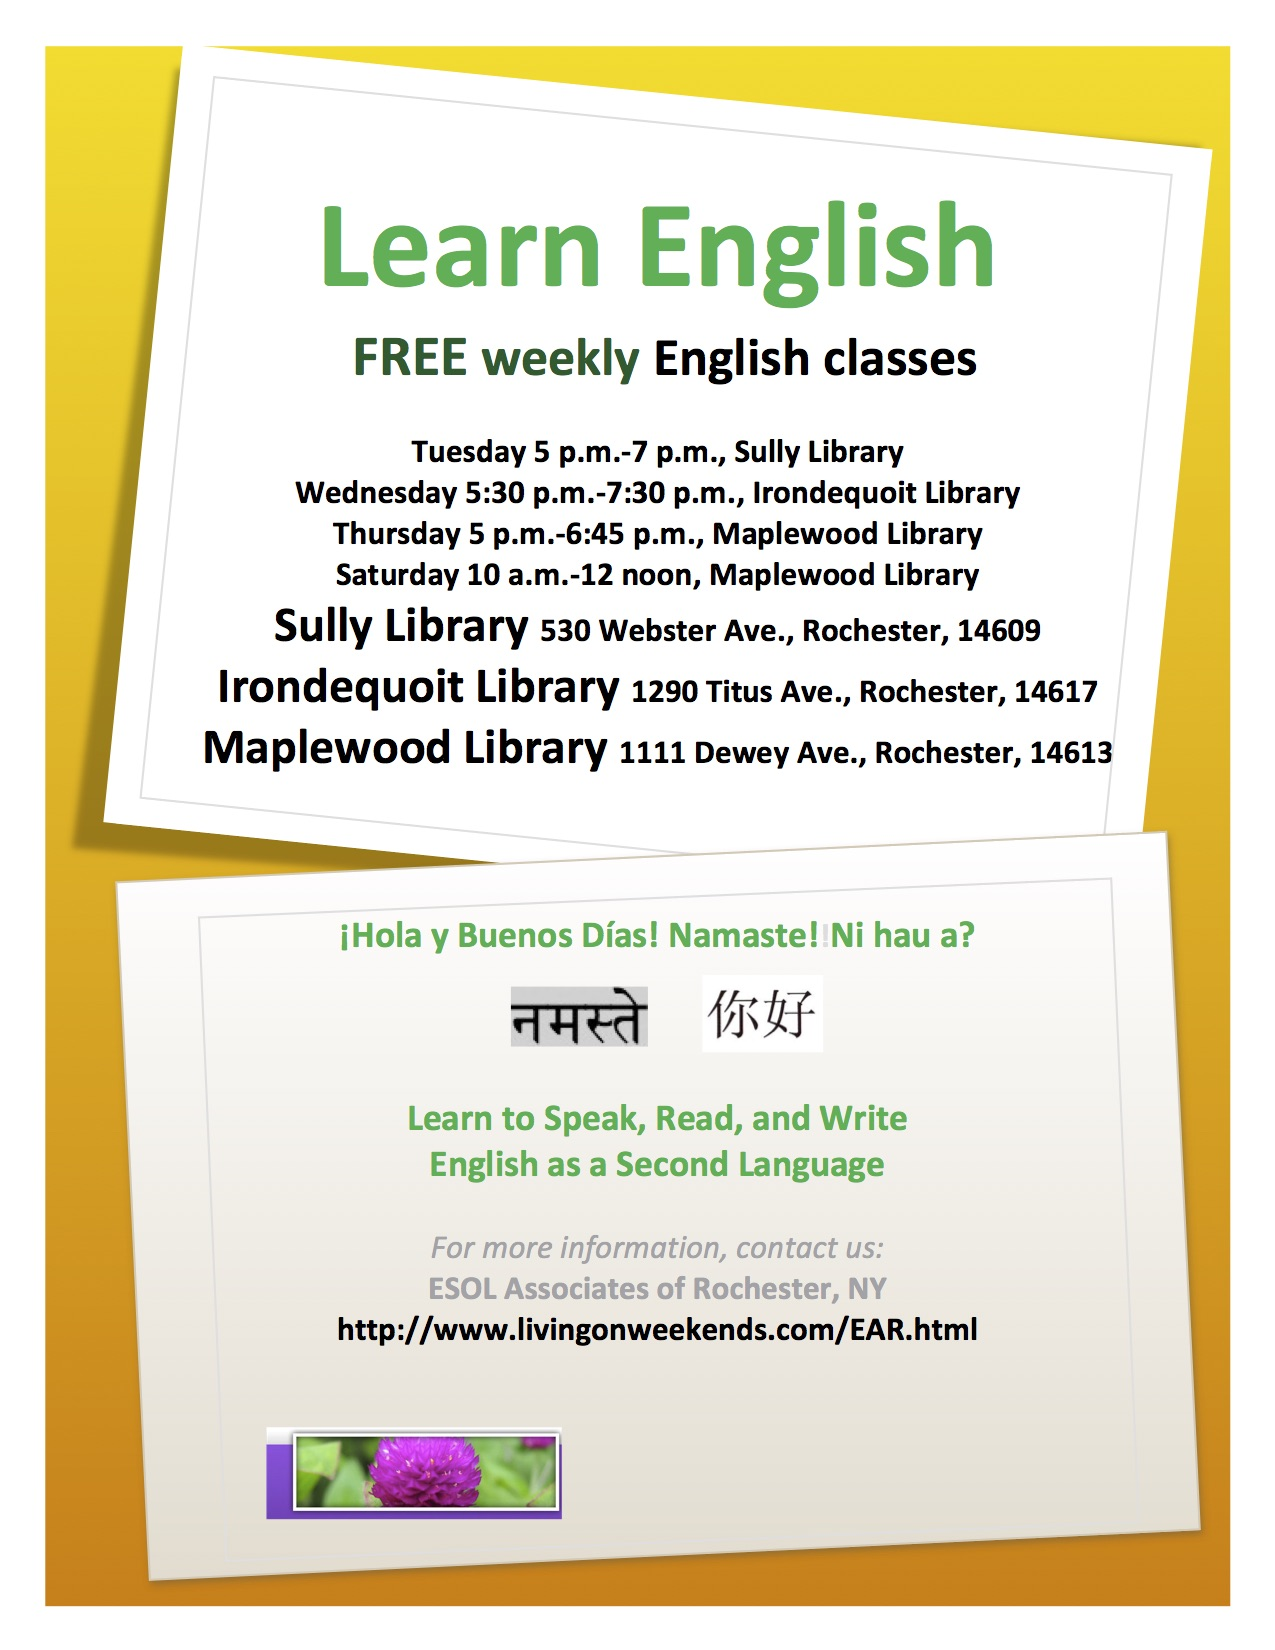 About Us: English as a Second Language, ESOL Associates of